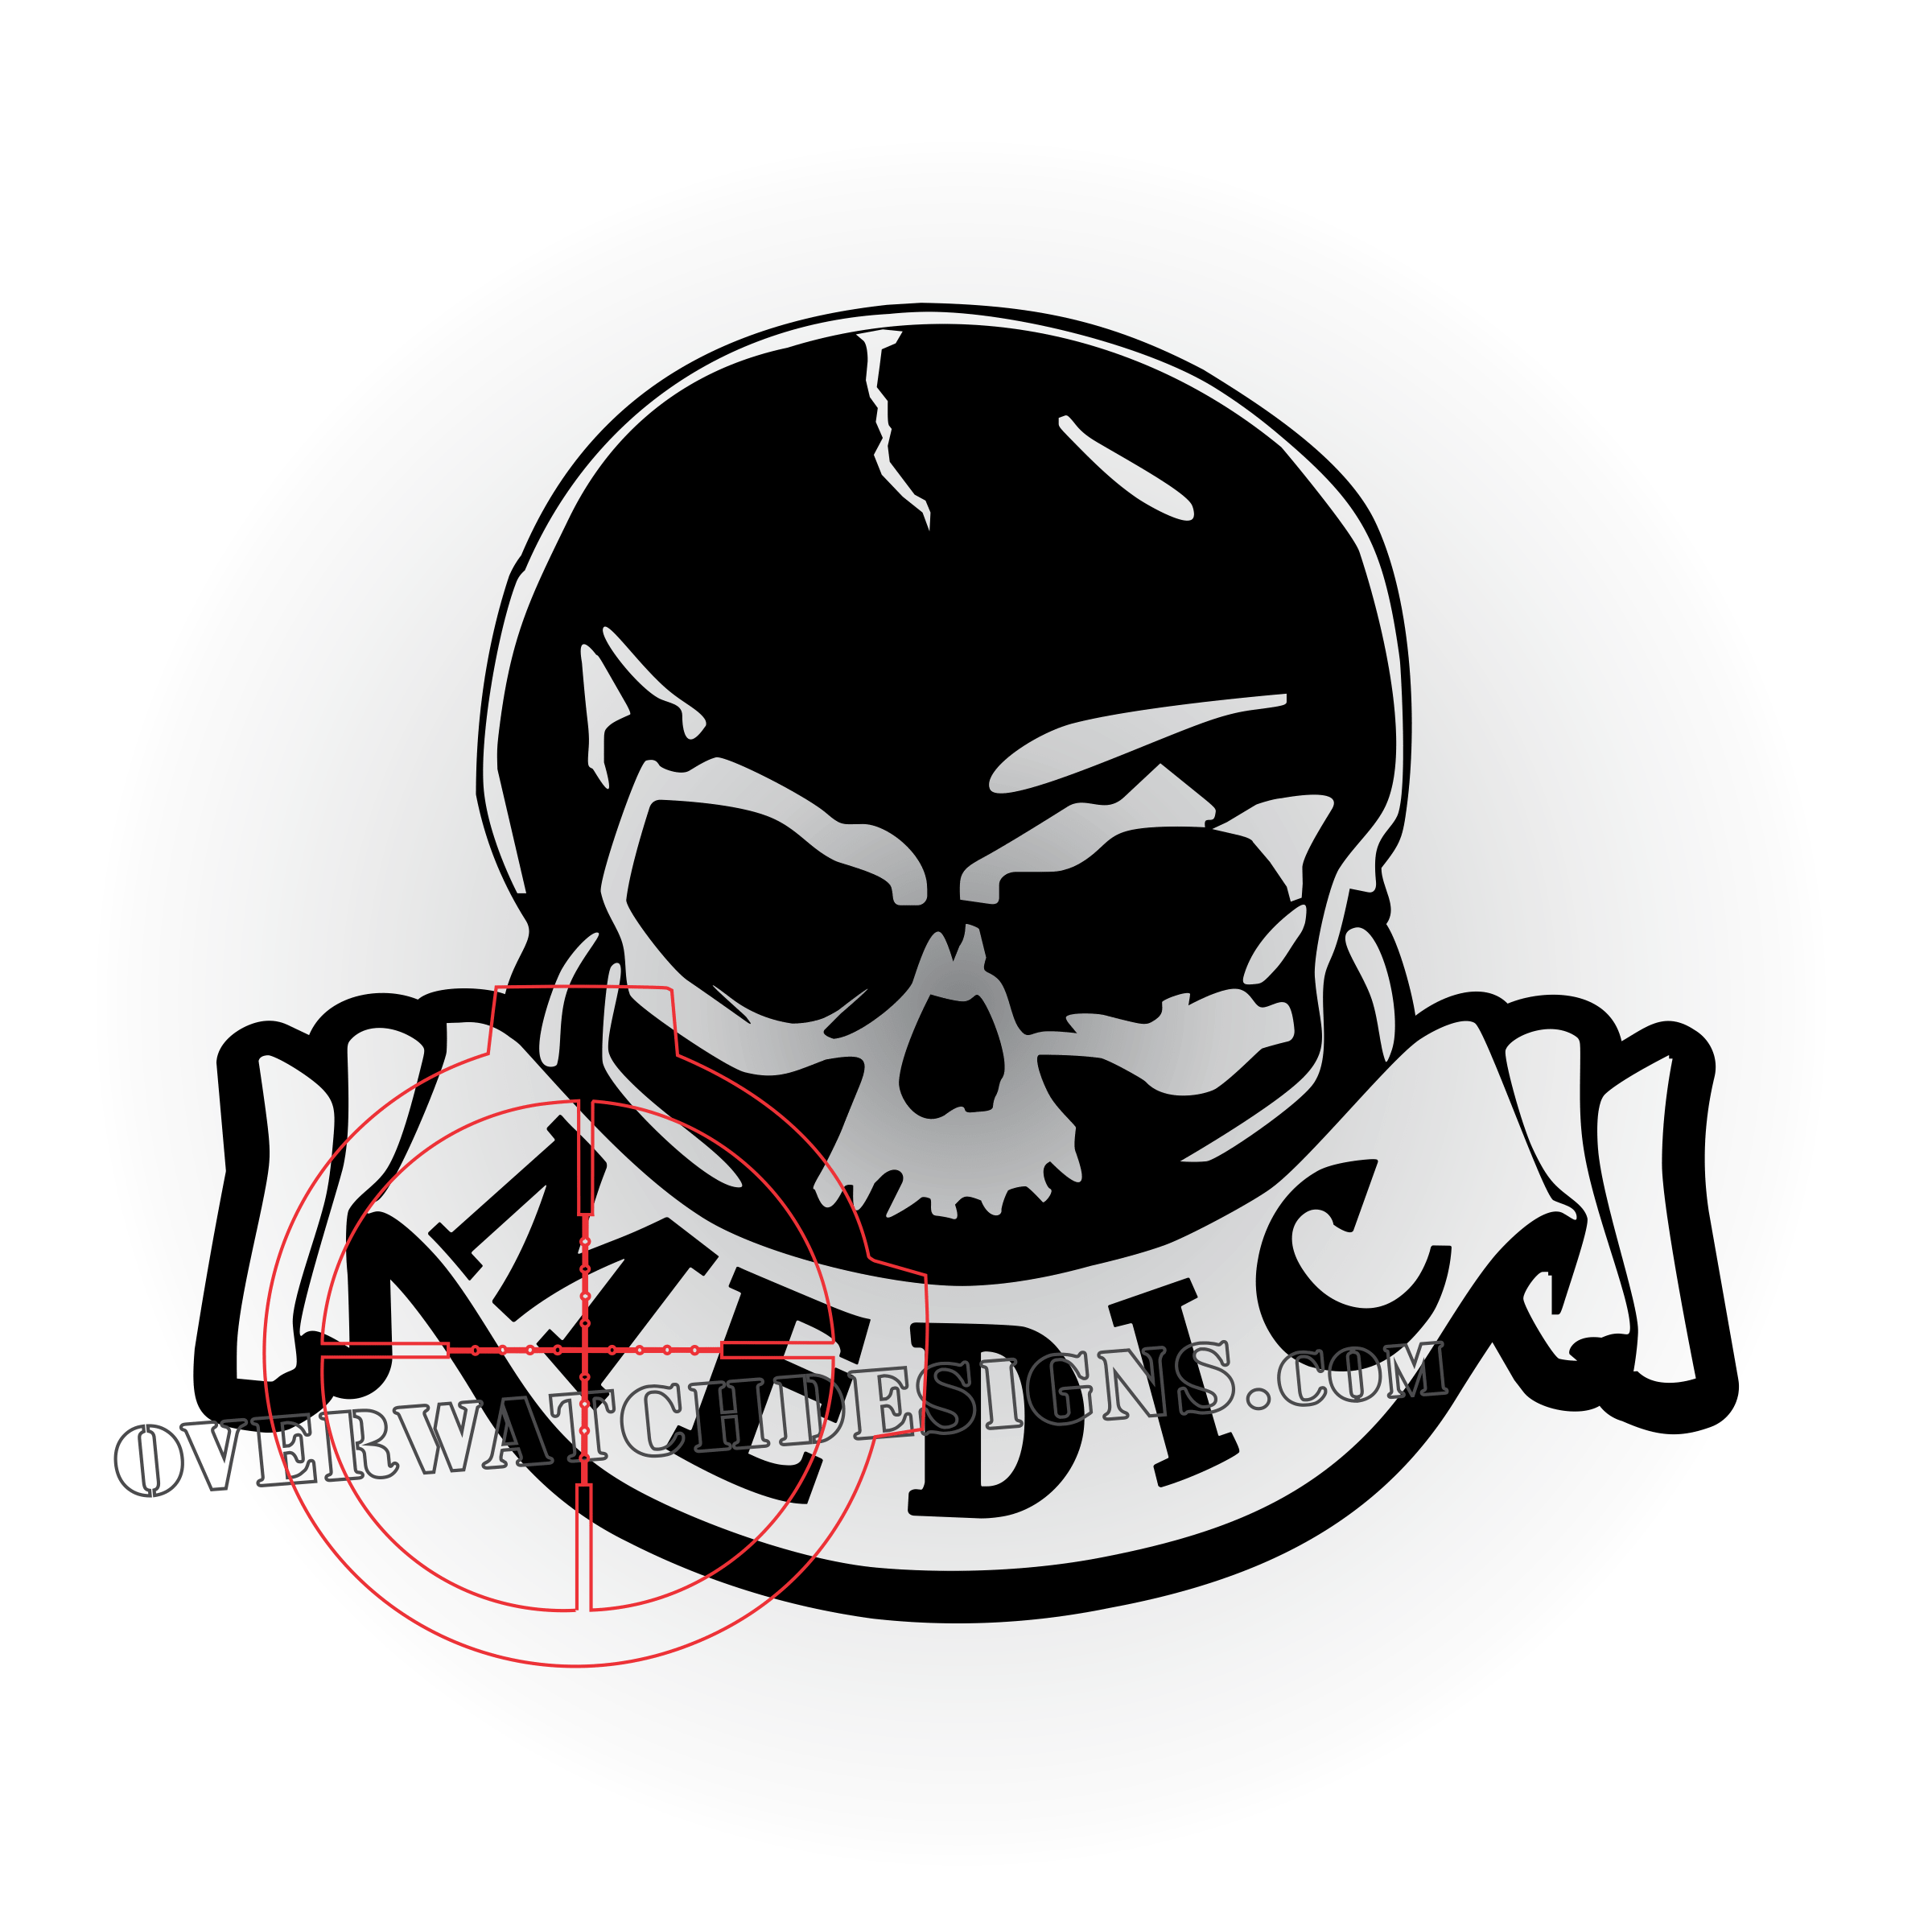 image download Usa drawing skull. Medic decal with scroll